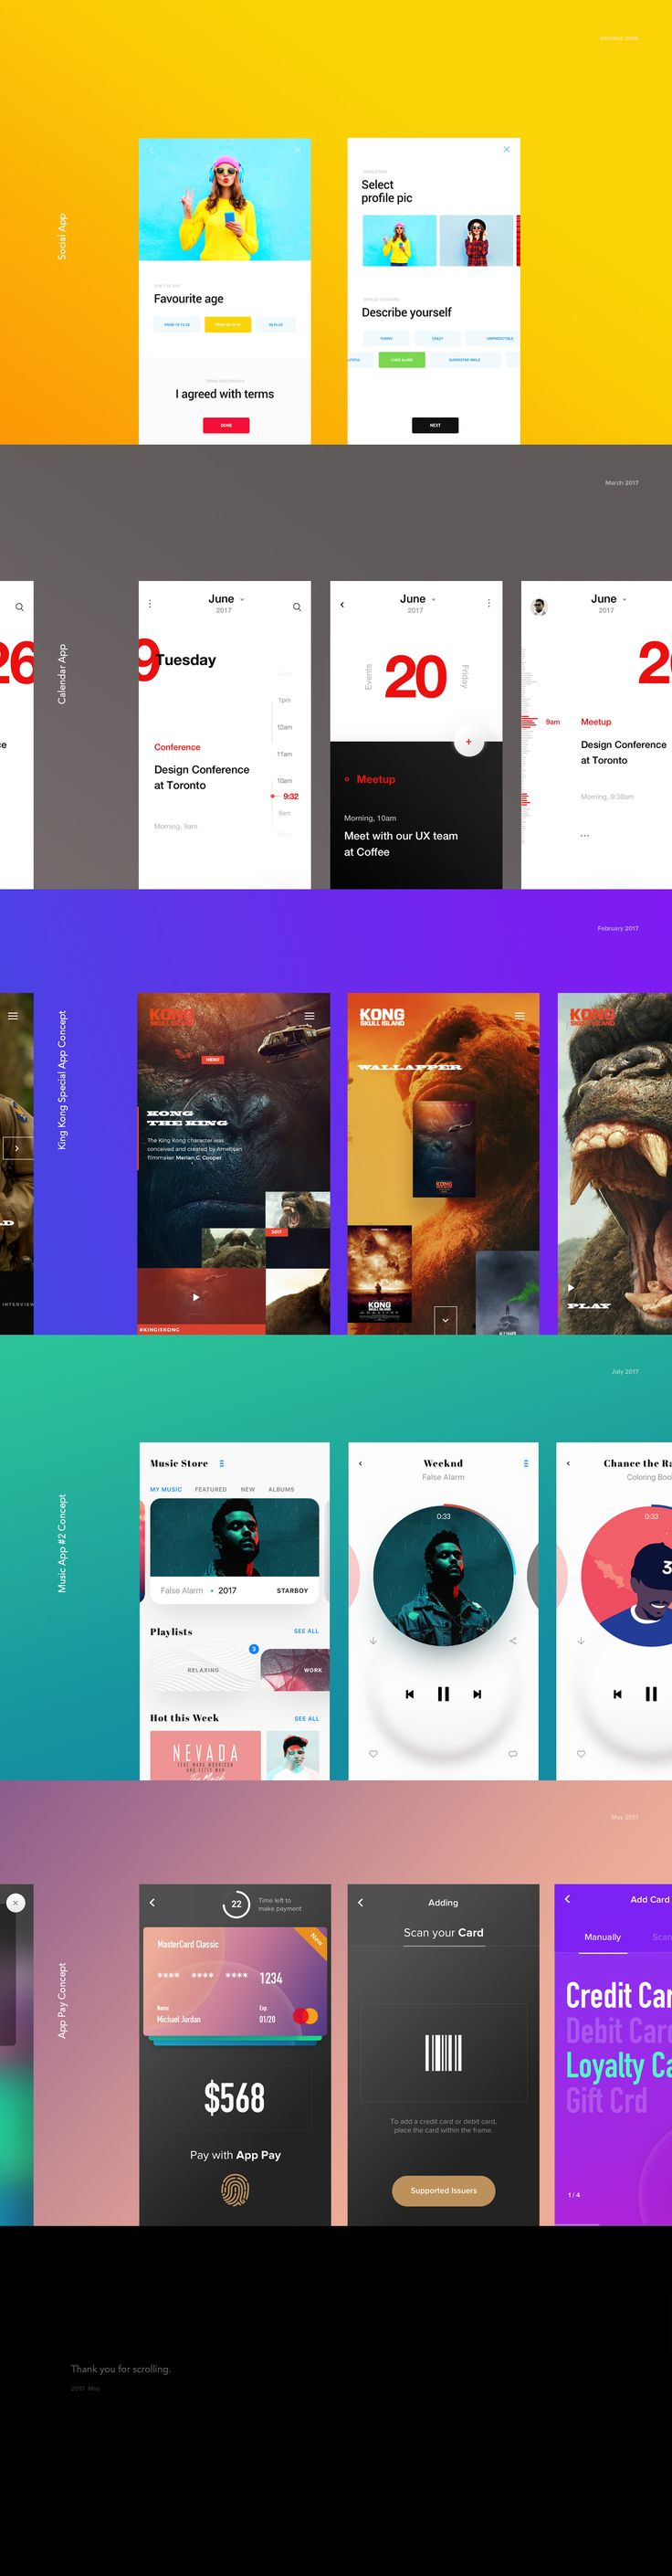 Mobile App Collection on Behance